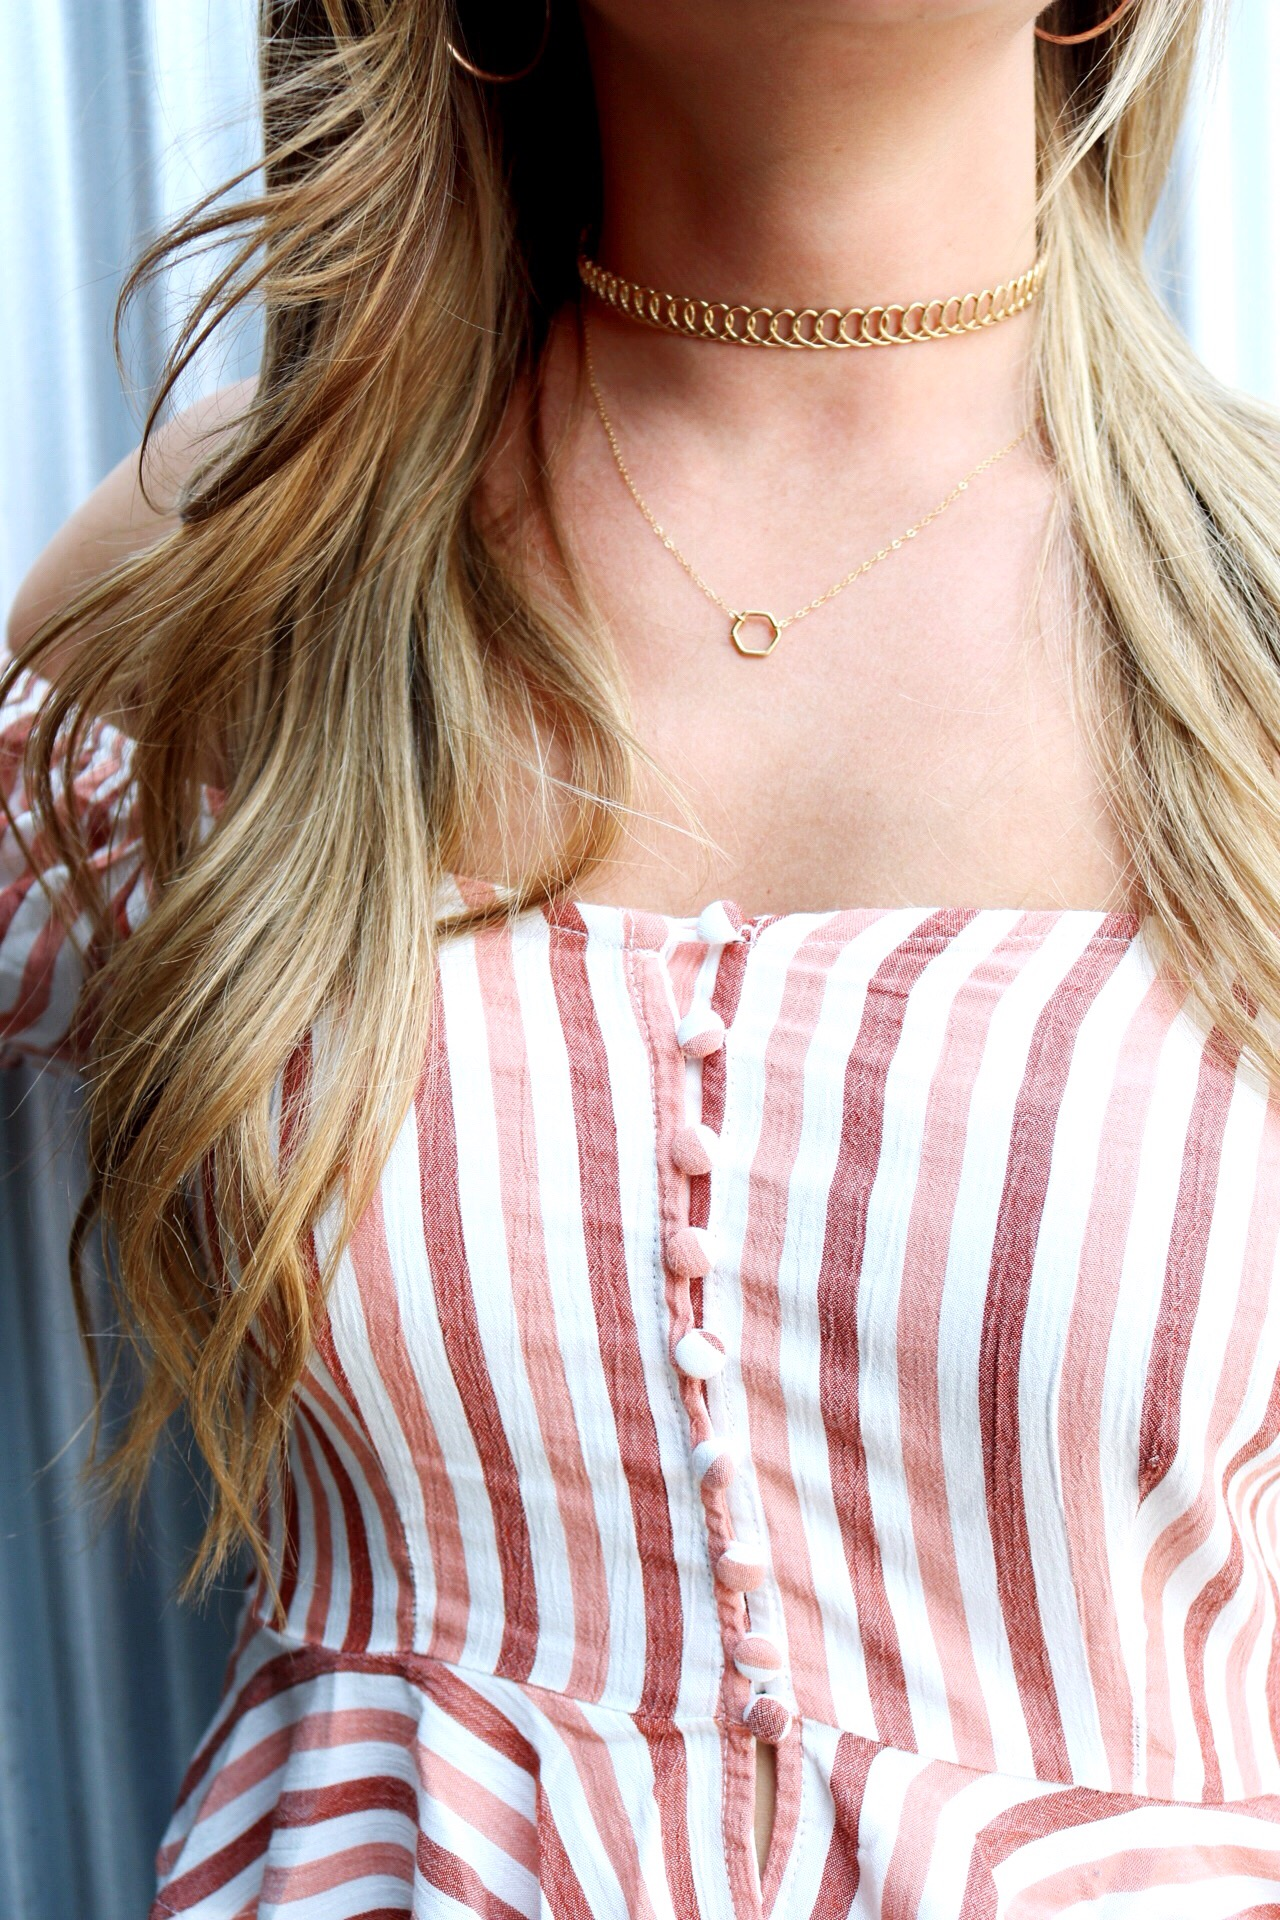 Vertical Striped Blouse, Manitoba Canada, Dainty Gold Jewelry, Hexagon Necklace, Chain Choker, Layering Necklaces